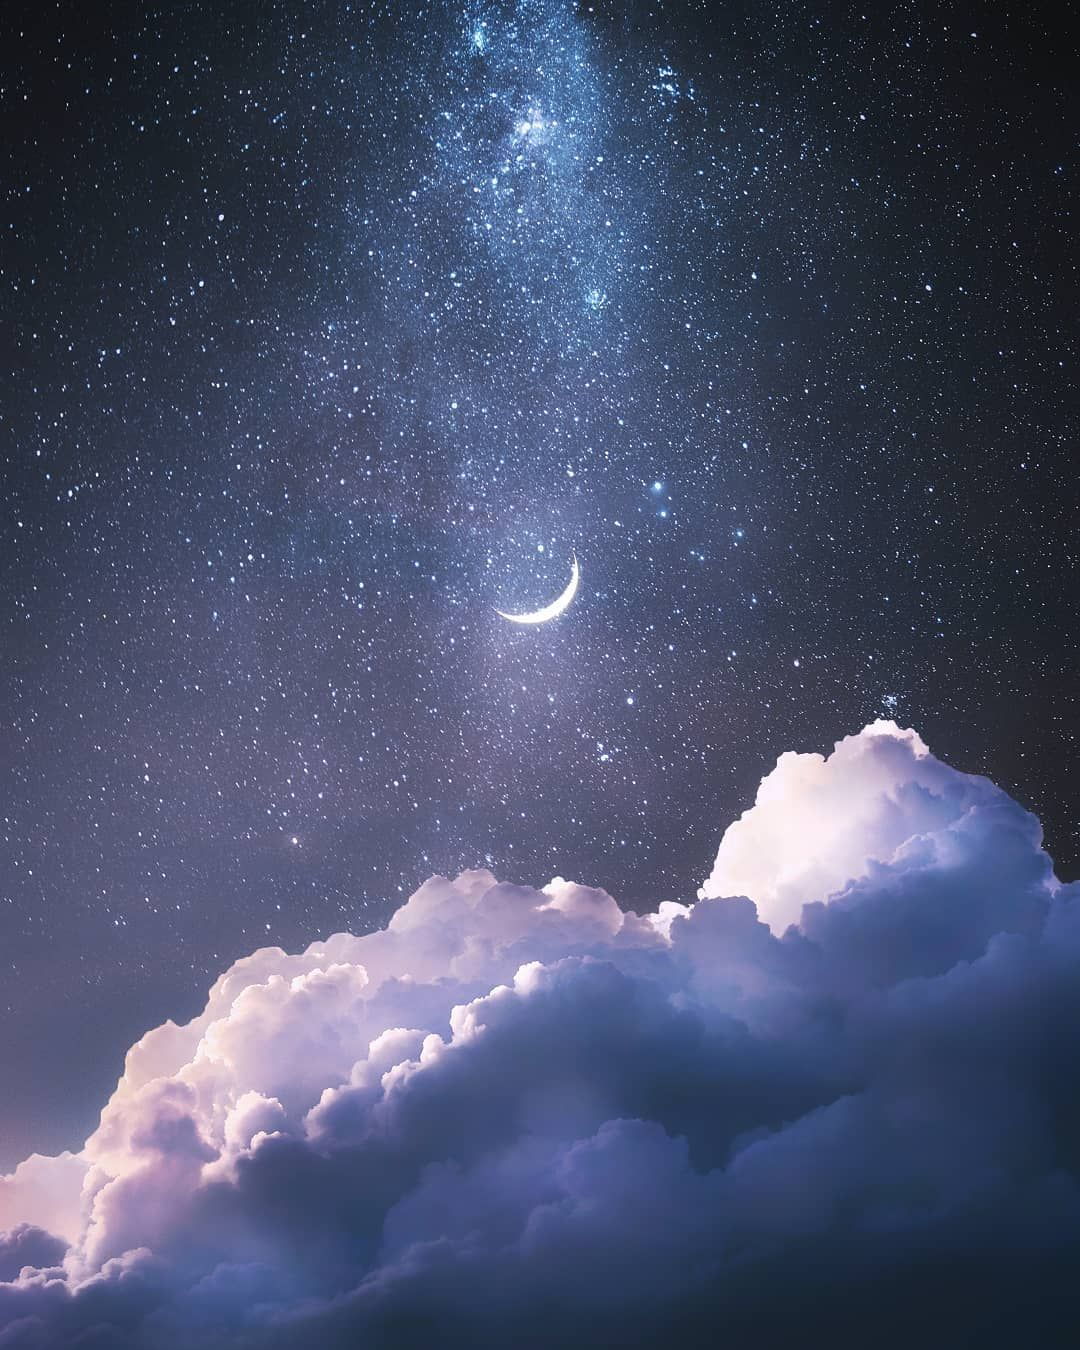 Pin By Valentin Neves On للتصميم Night Sky Wallpaper Sky Aesthetic Moon Photography